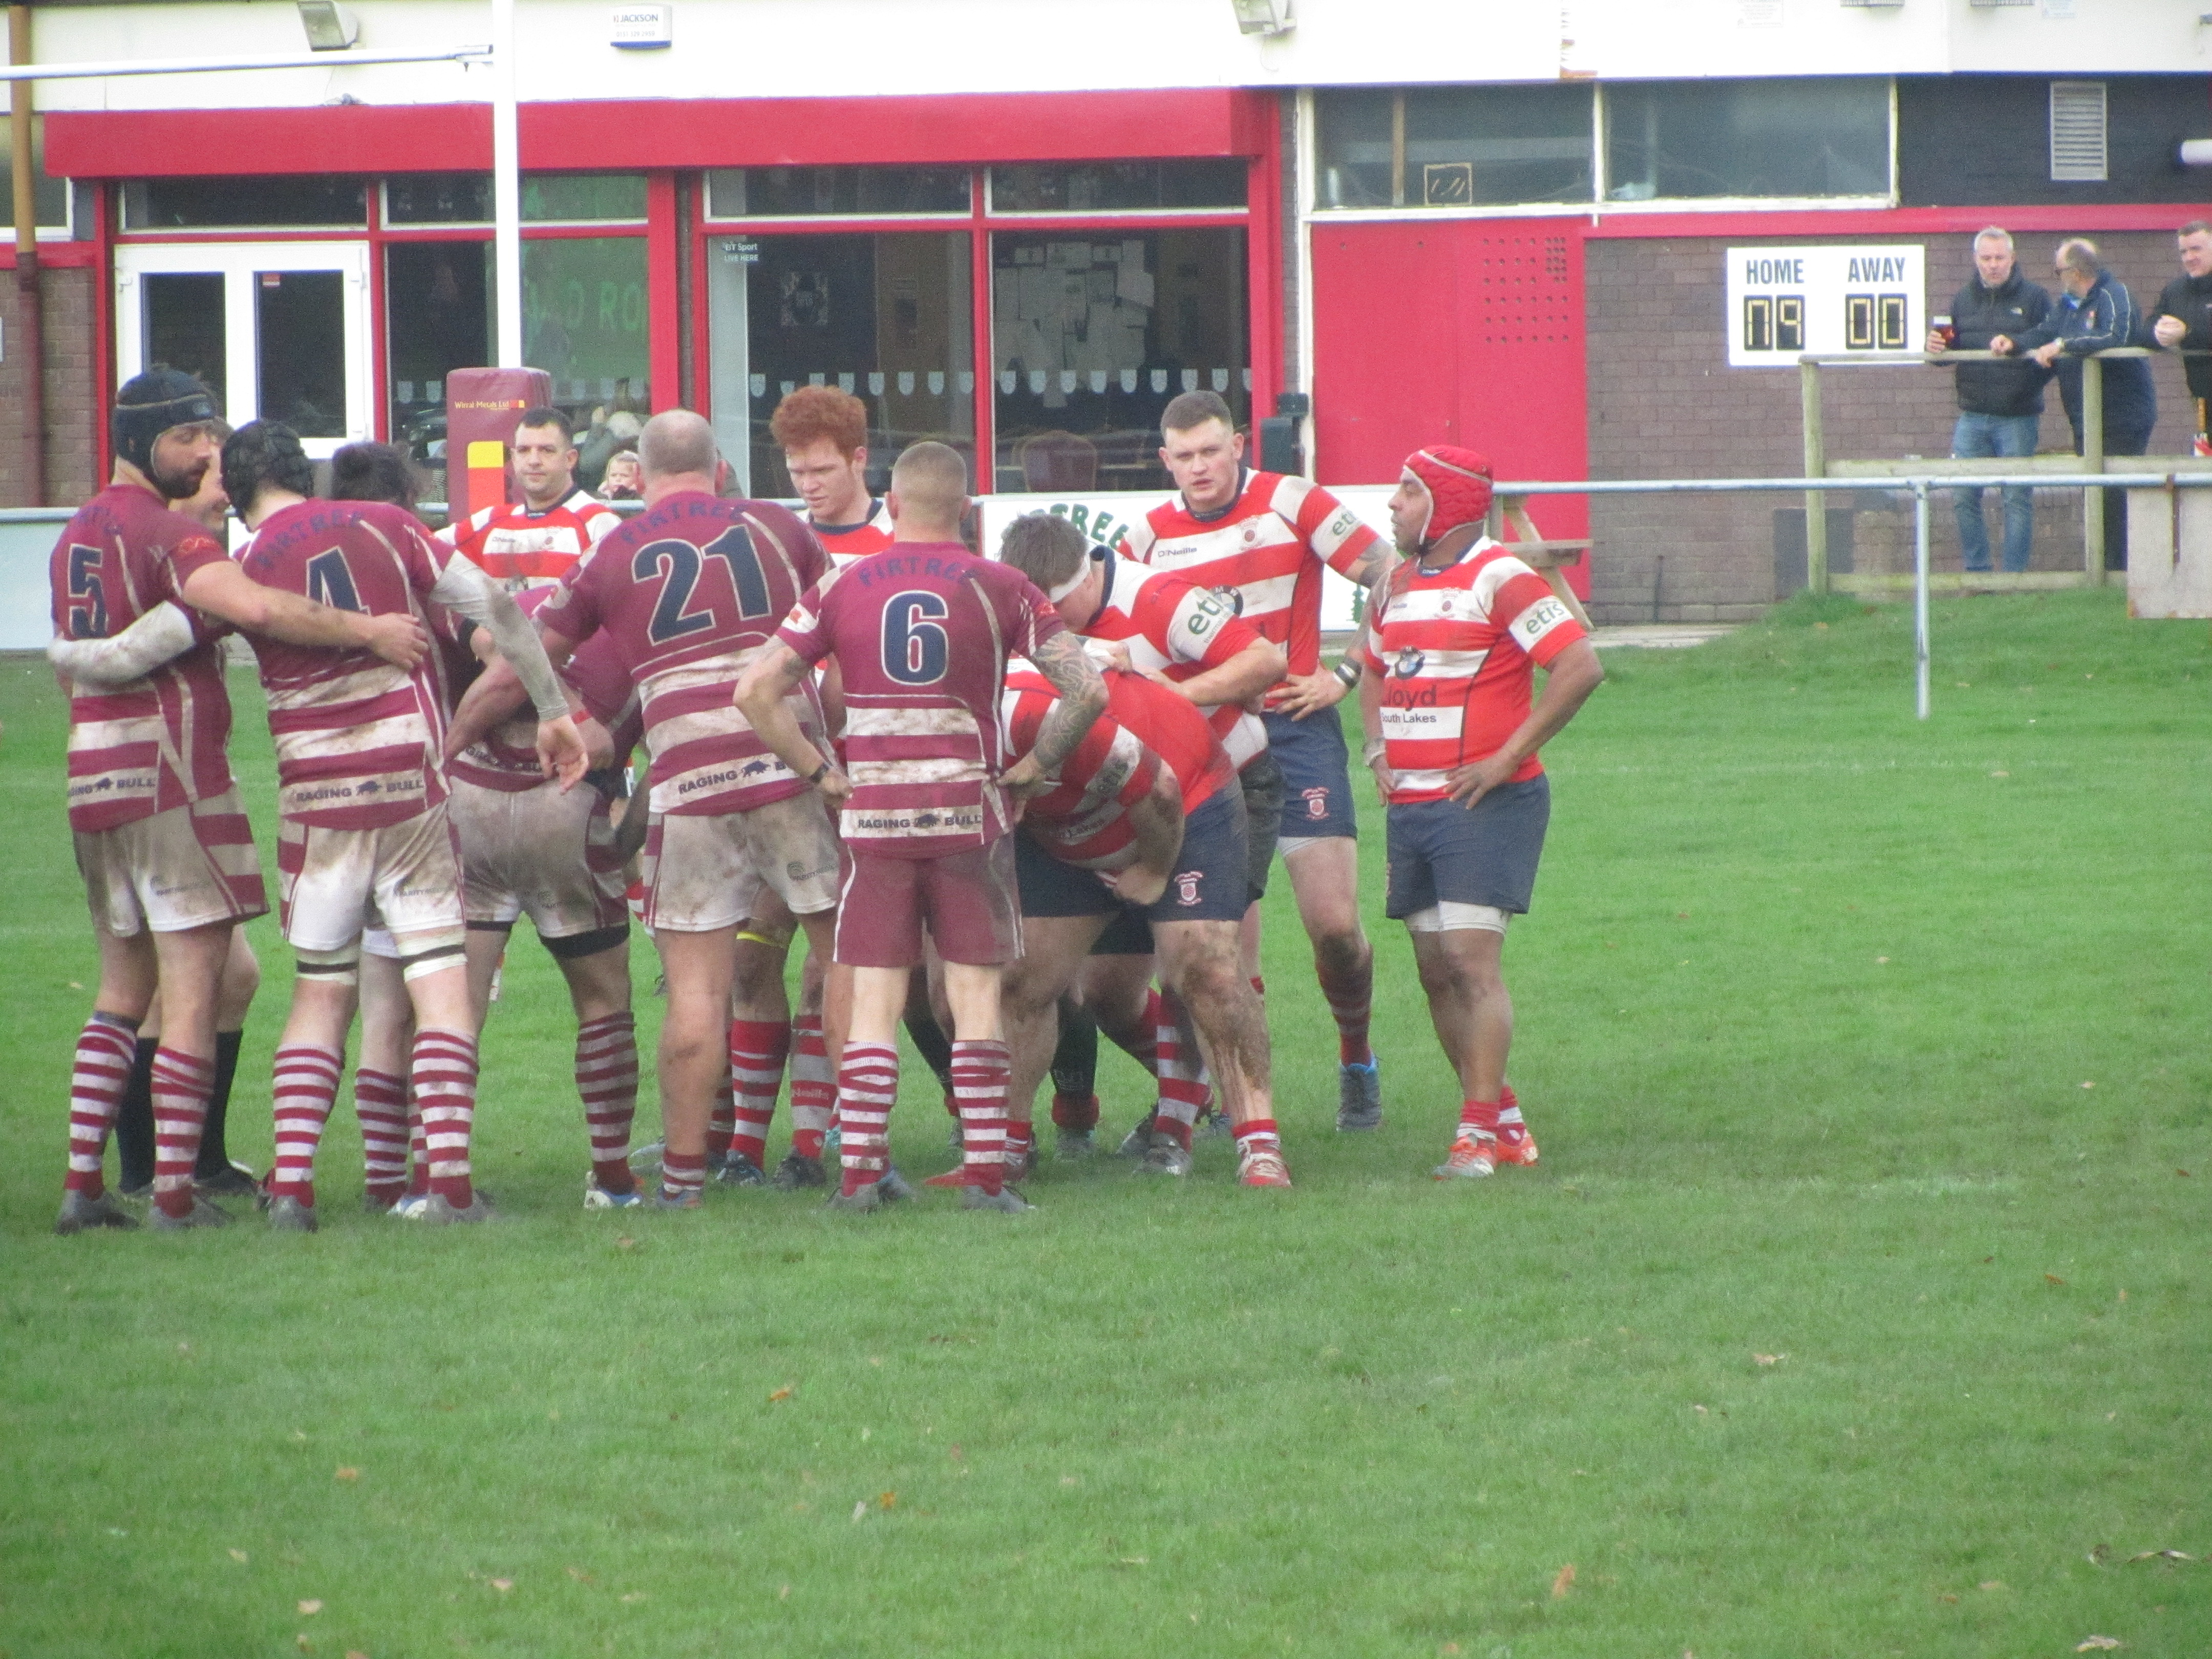 Wirral 2nd XV 12 points v 0 points Vale of Lune 2nd XV